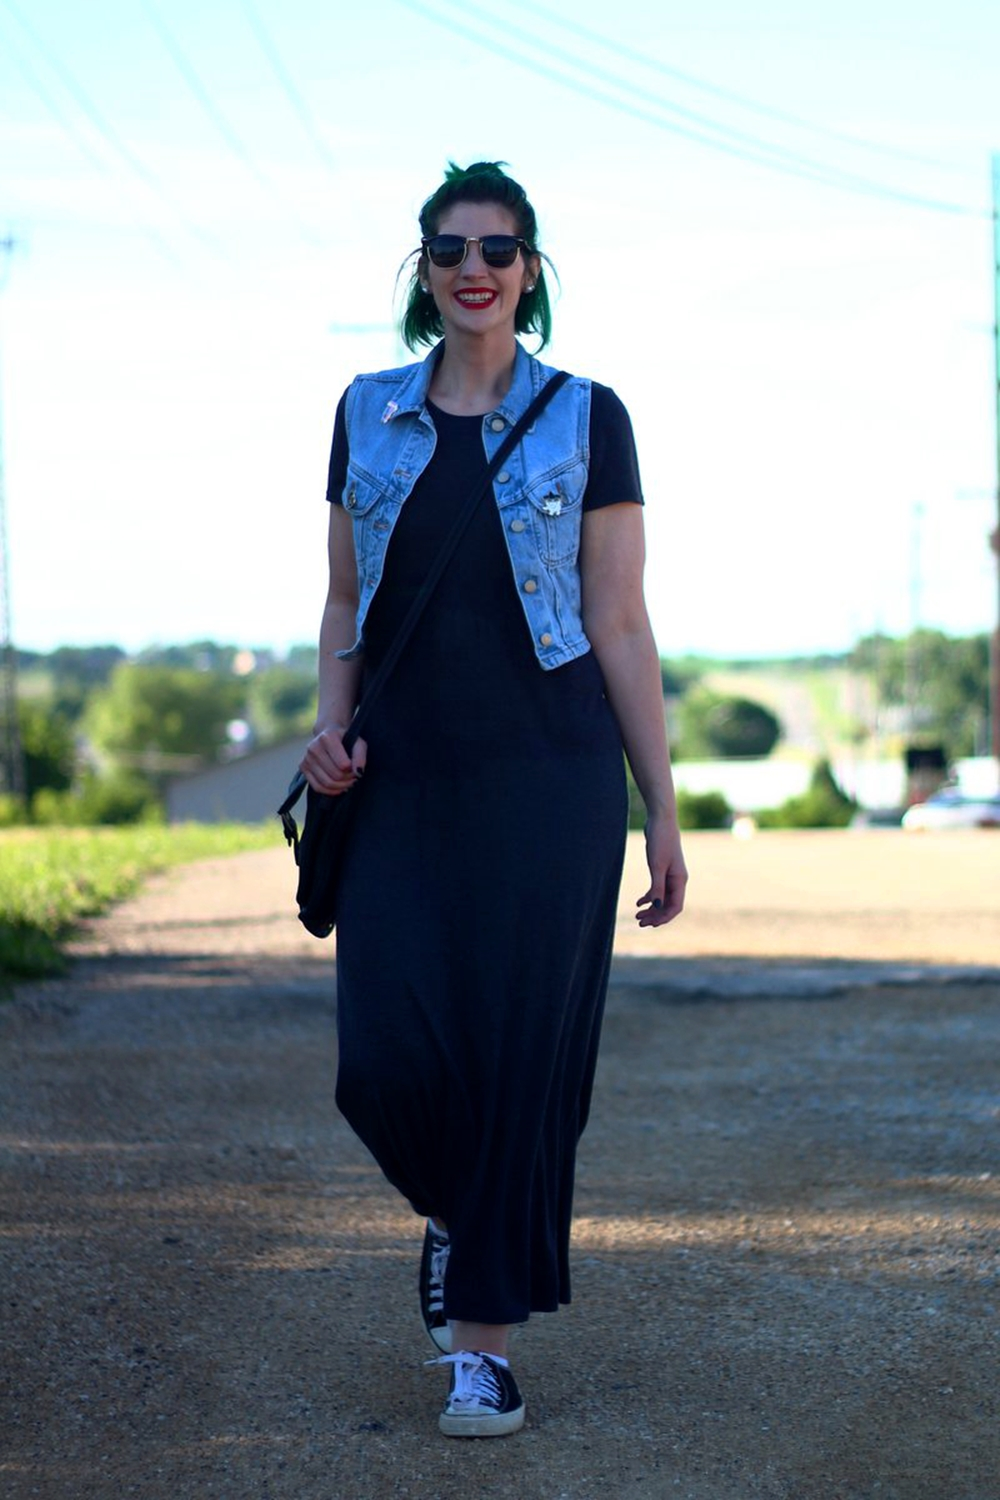 Outfit: gray ankle length maxi dress, light wash denim vest, thrifted crossbody bag, Darling Distraction enamel pins, ColourPop ultra matte lip color in Creeper, black and white sneakers